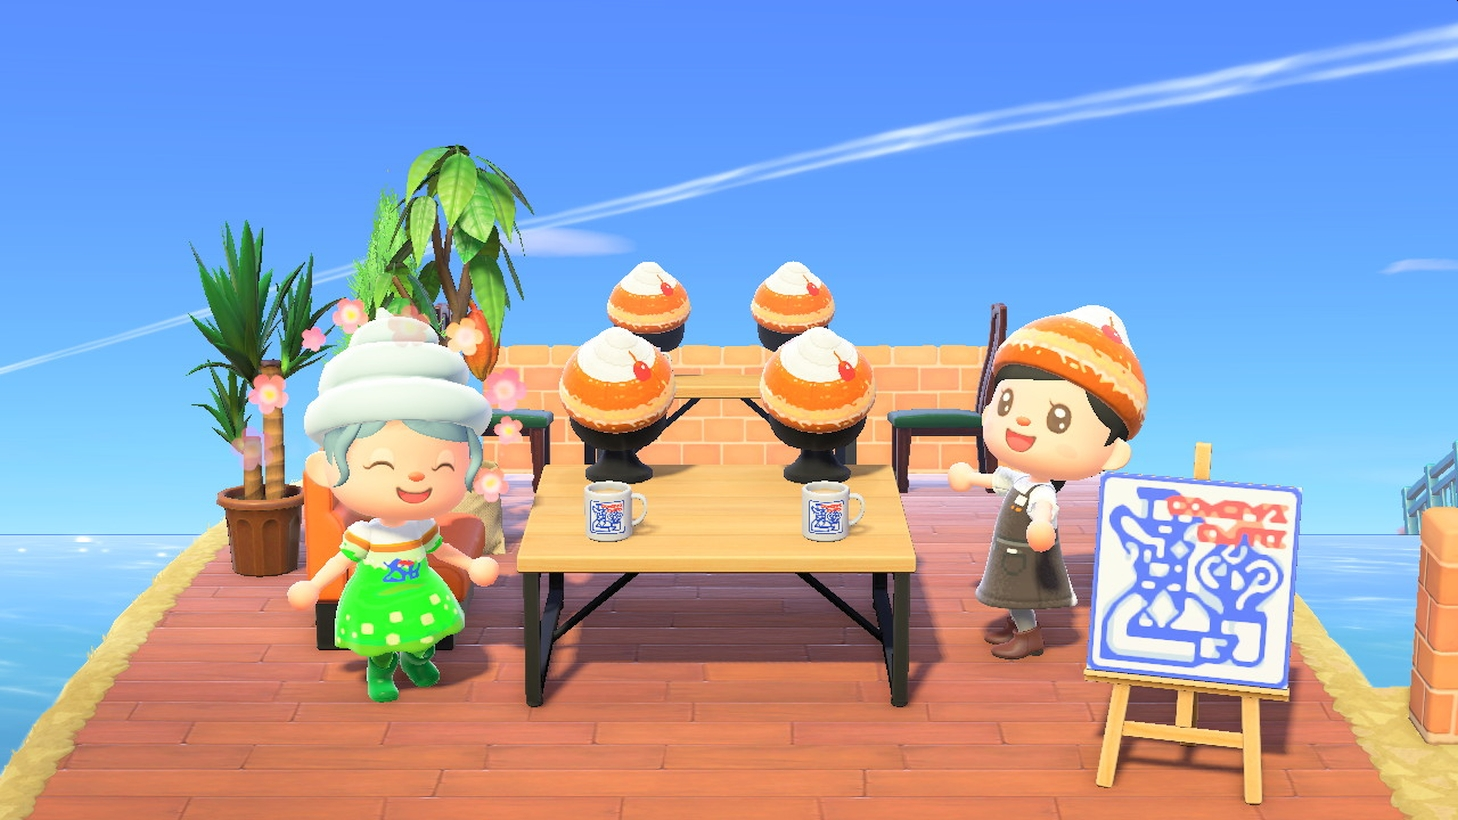 Komeda's Cafe Offers Custom Cafe Designs For Animal Crossing: New Horizons